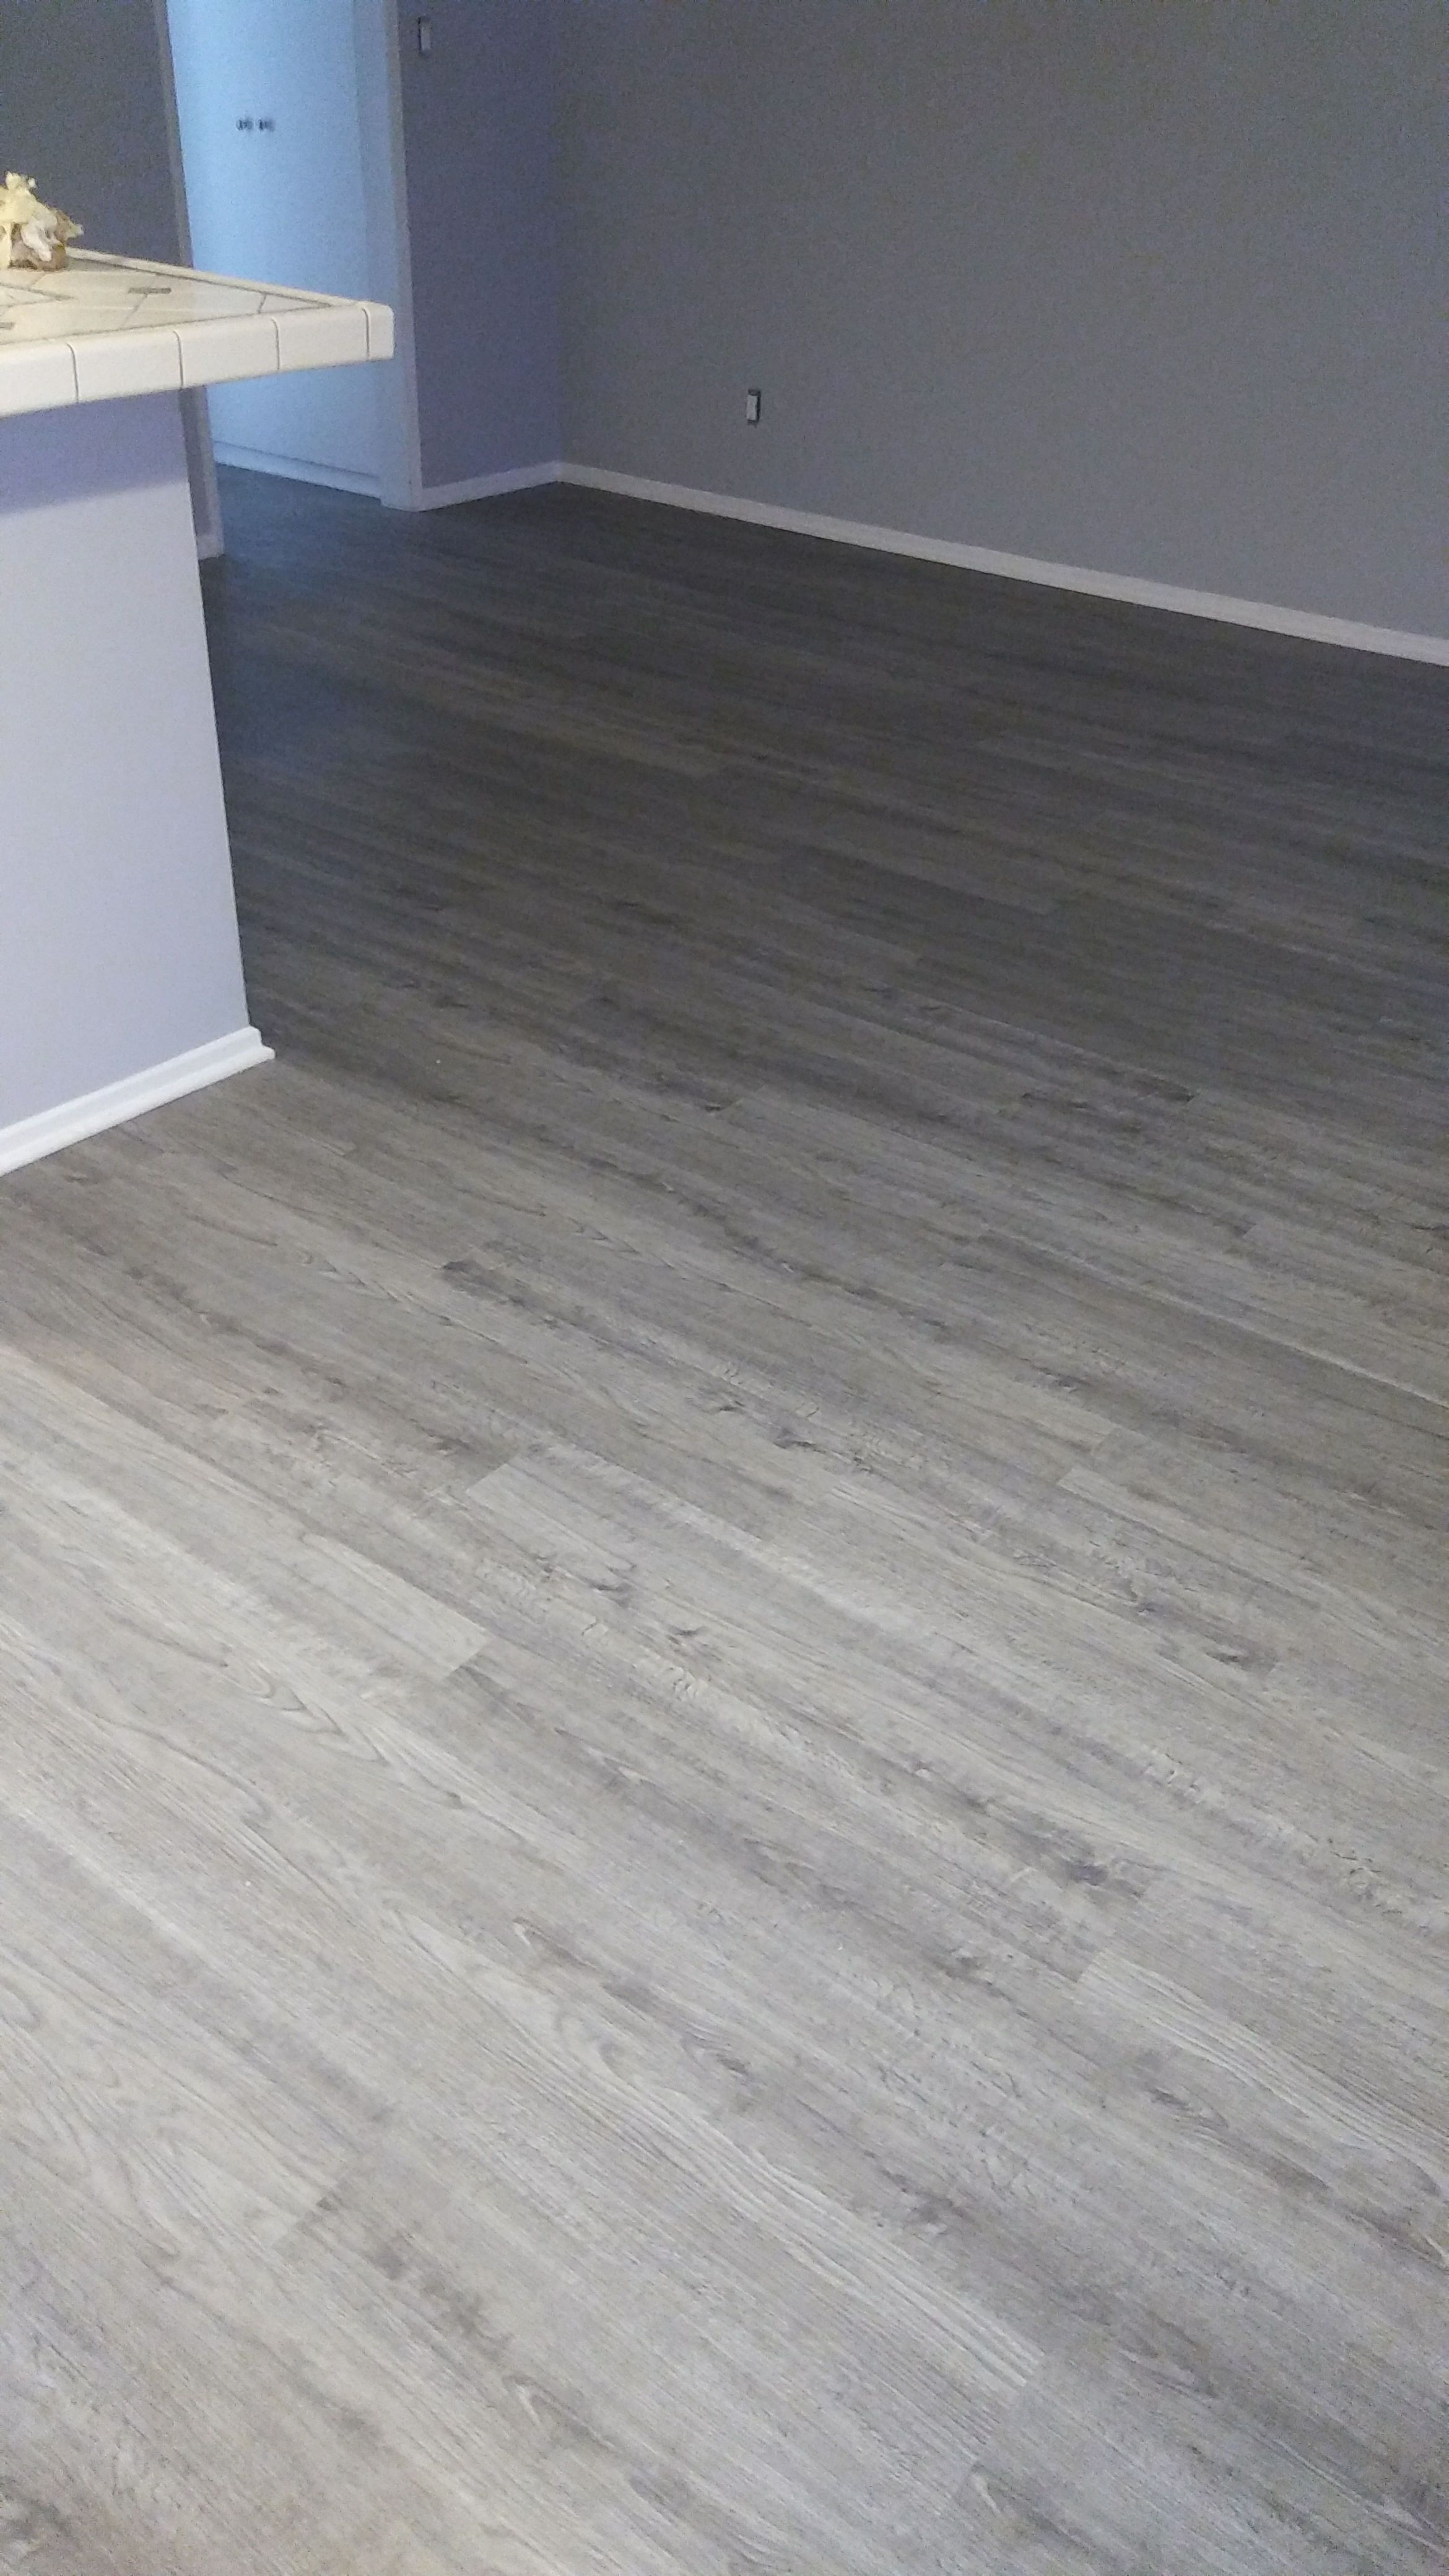 Here S A Vinyl Plank Flooring Installation In Rockport Grey Color It S One Of Our Stock Col Grey Vinyl Plank Flooring Vinyl Plank Flooring Grey Vinyl Flooring